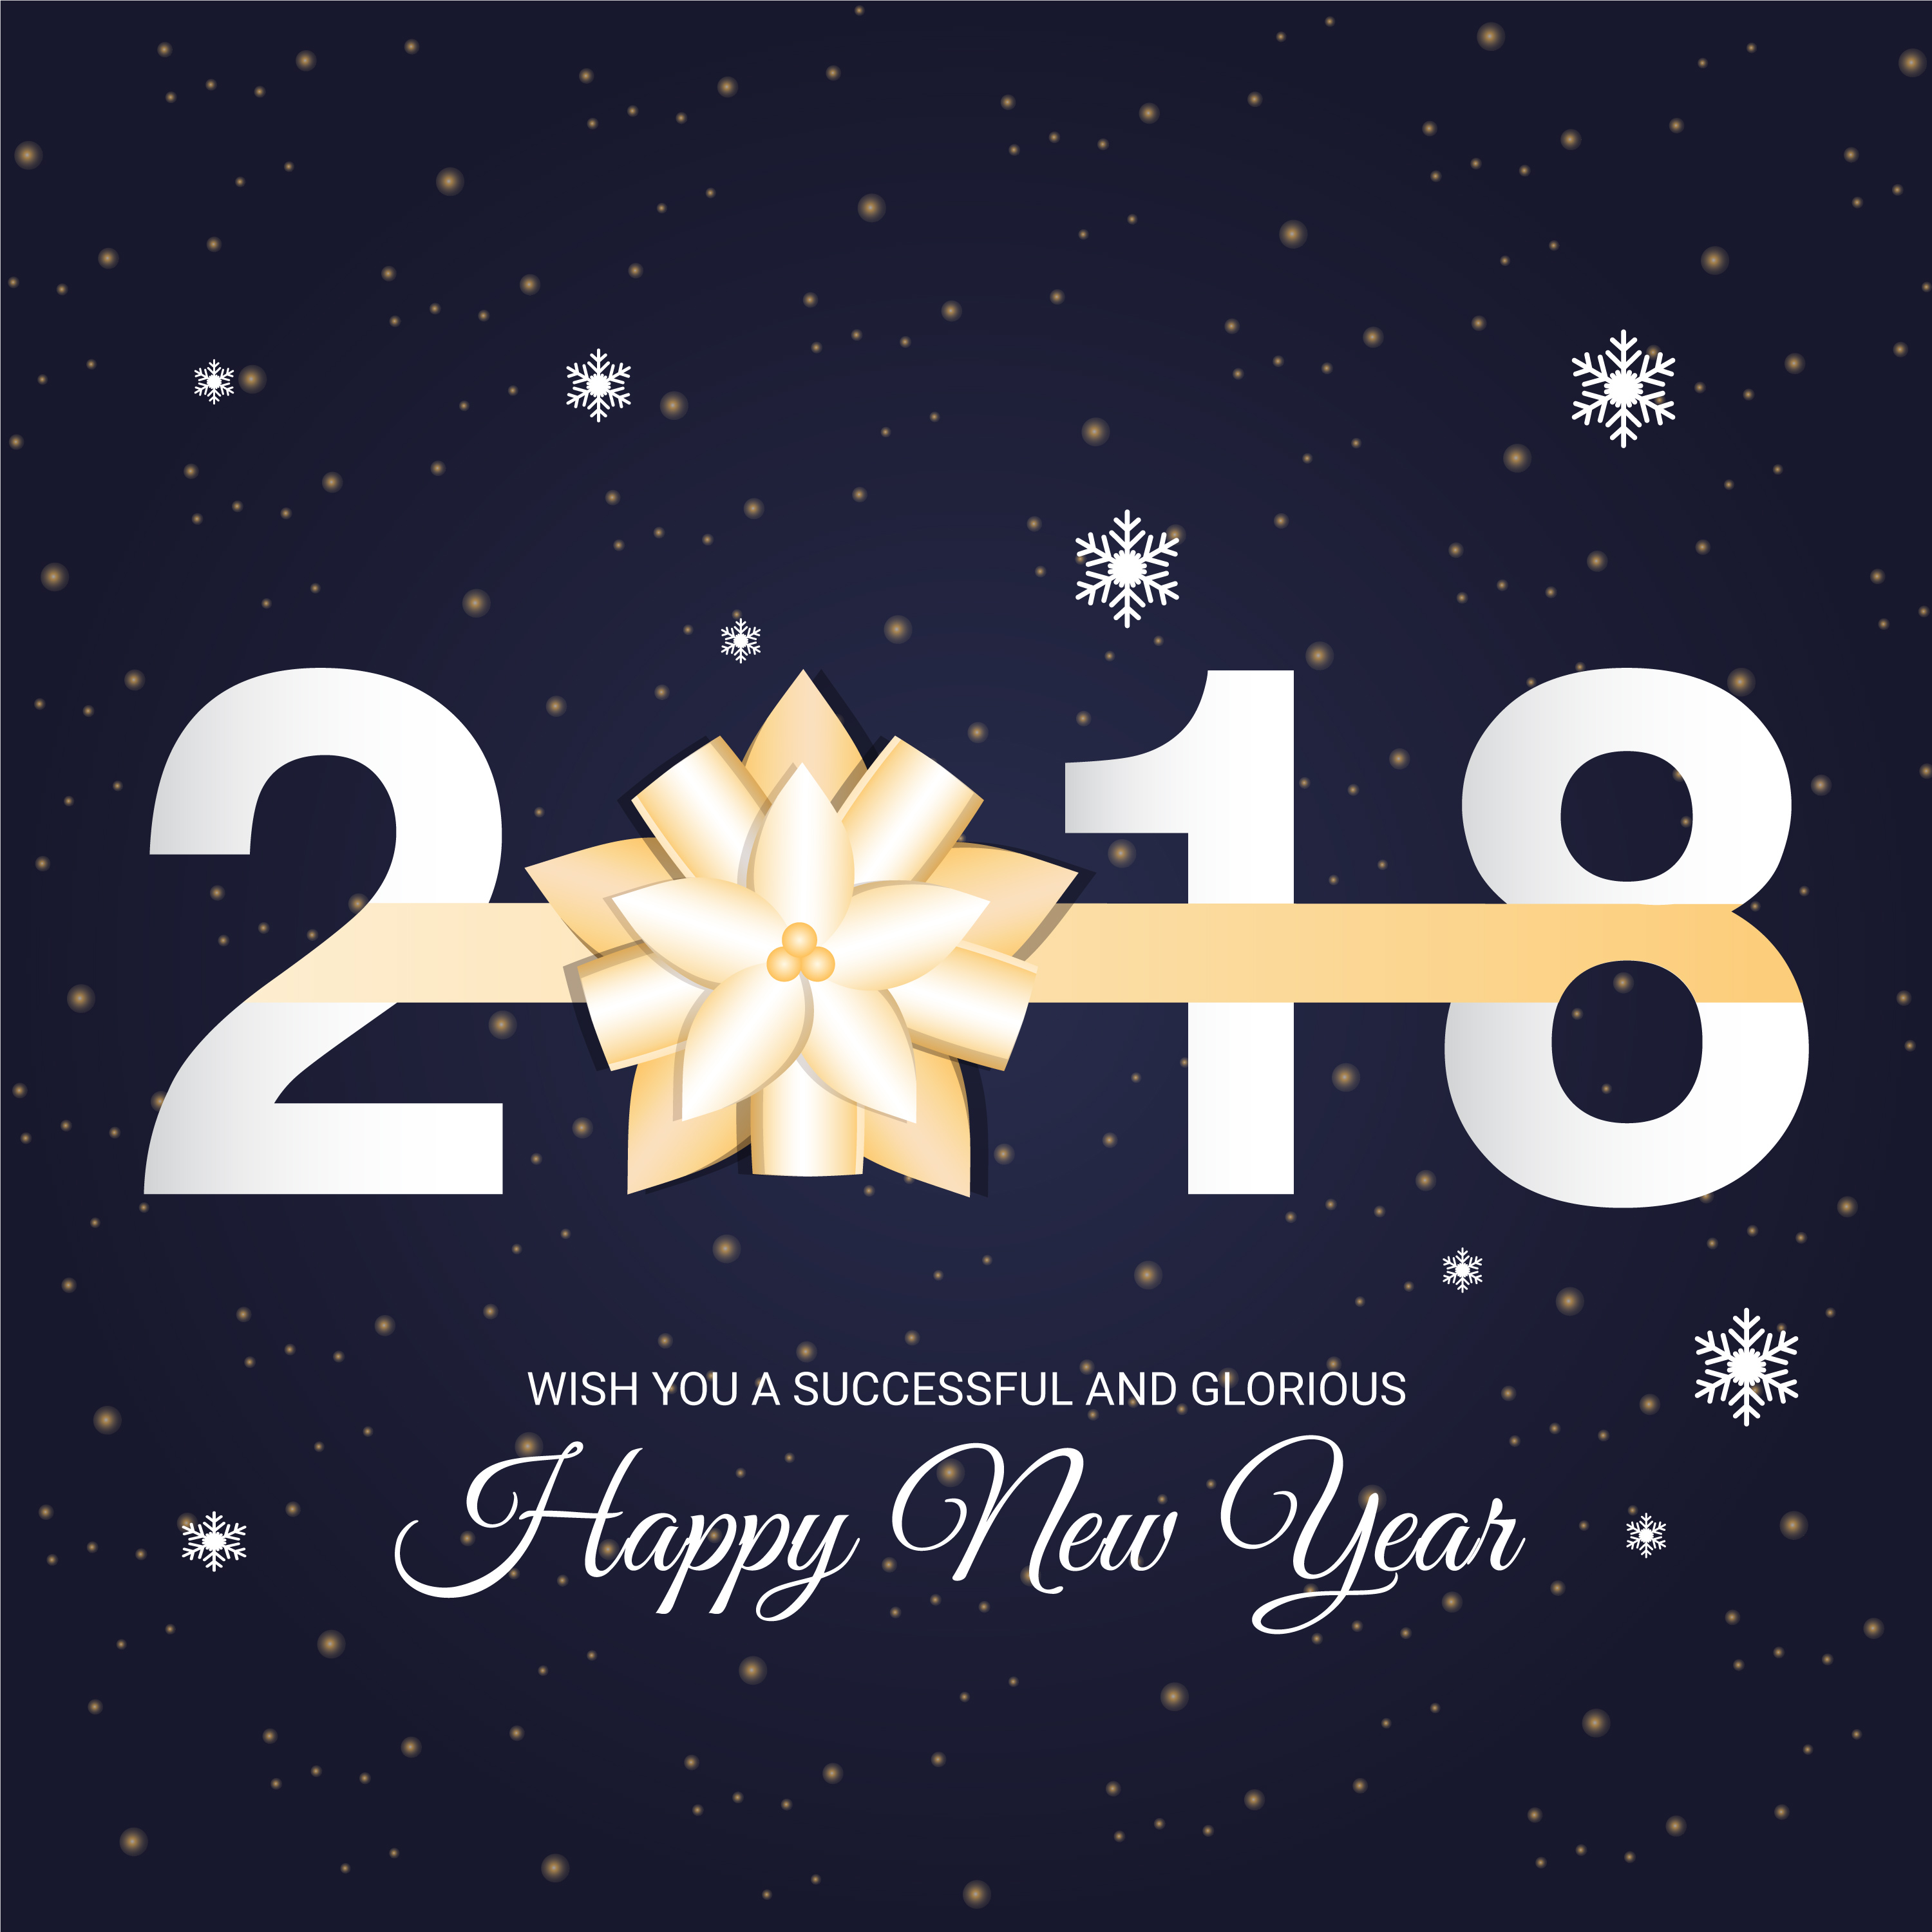 Free Flat Design Vector New Year Greeting Download Free Vector Art